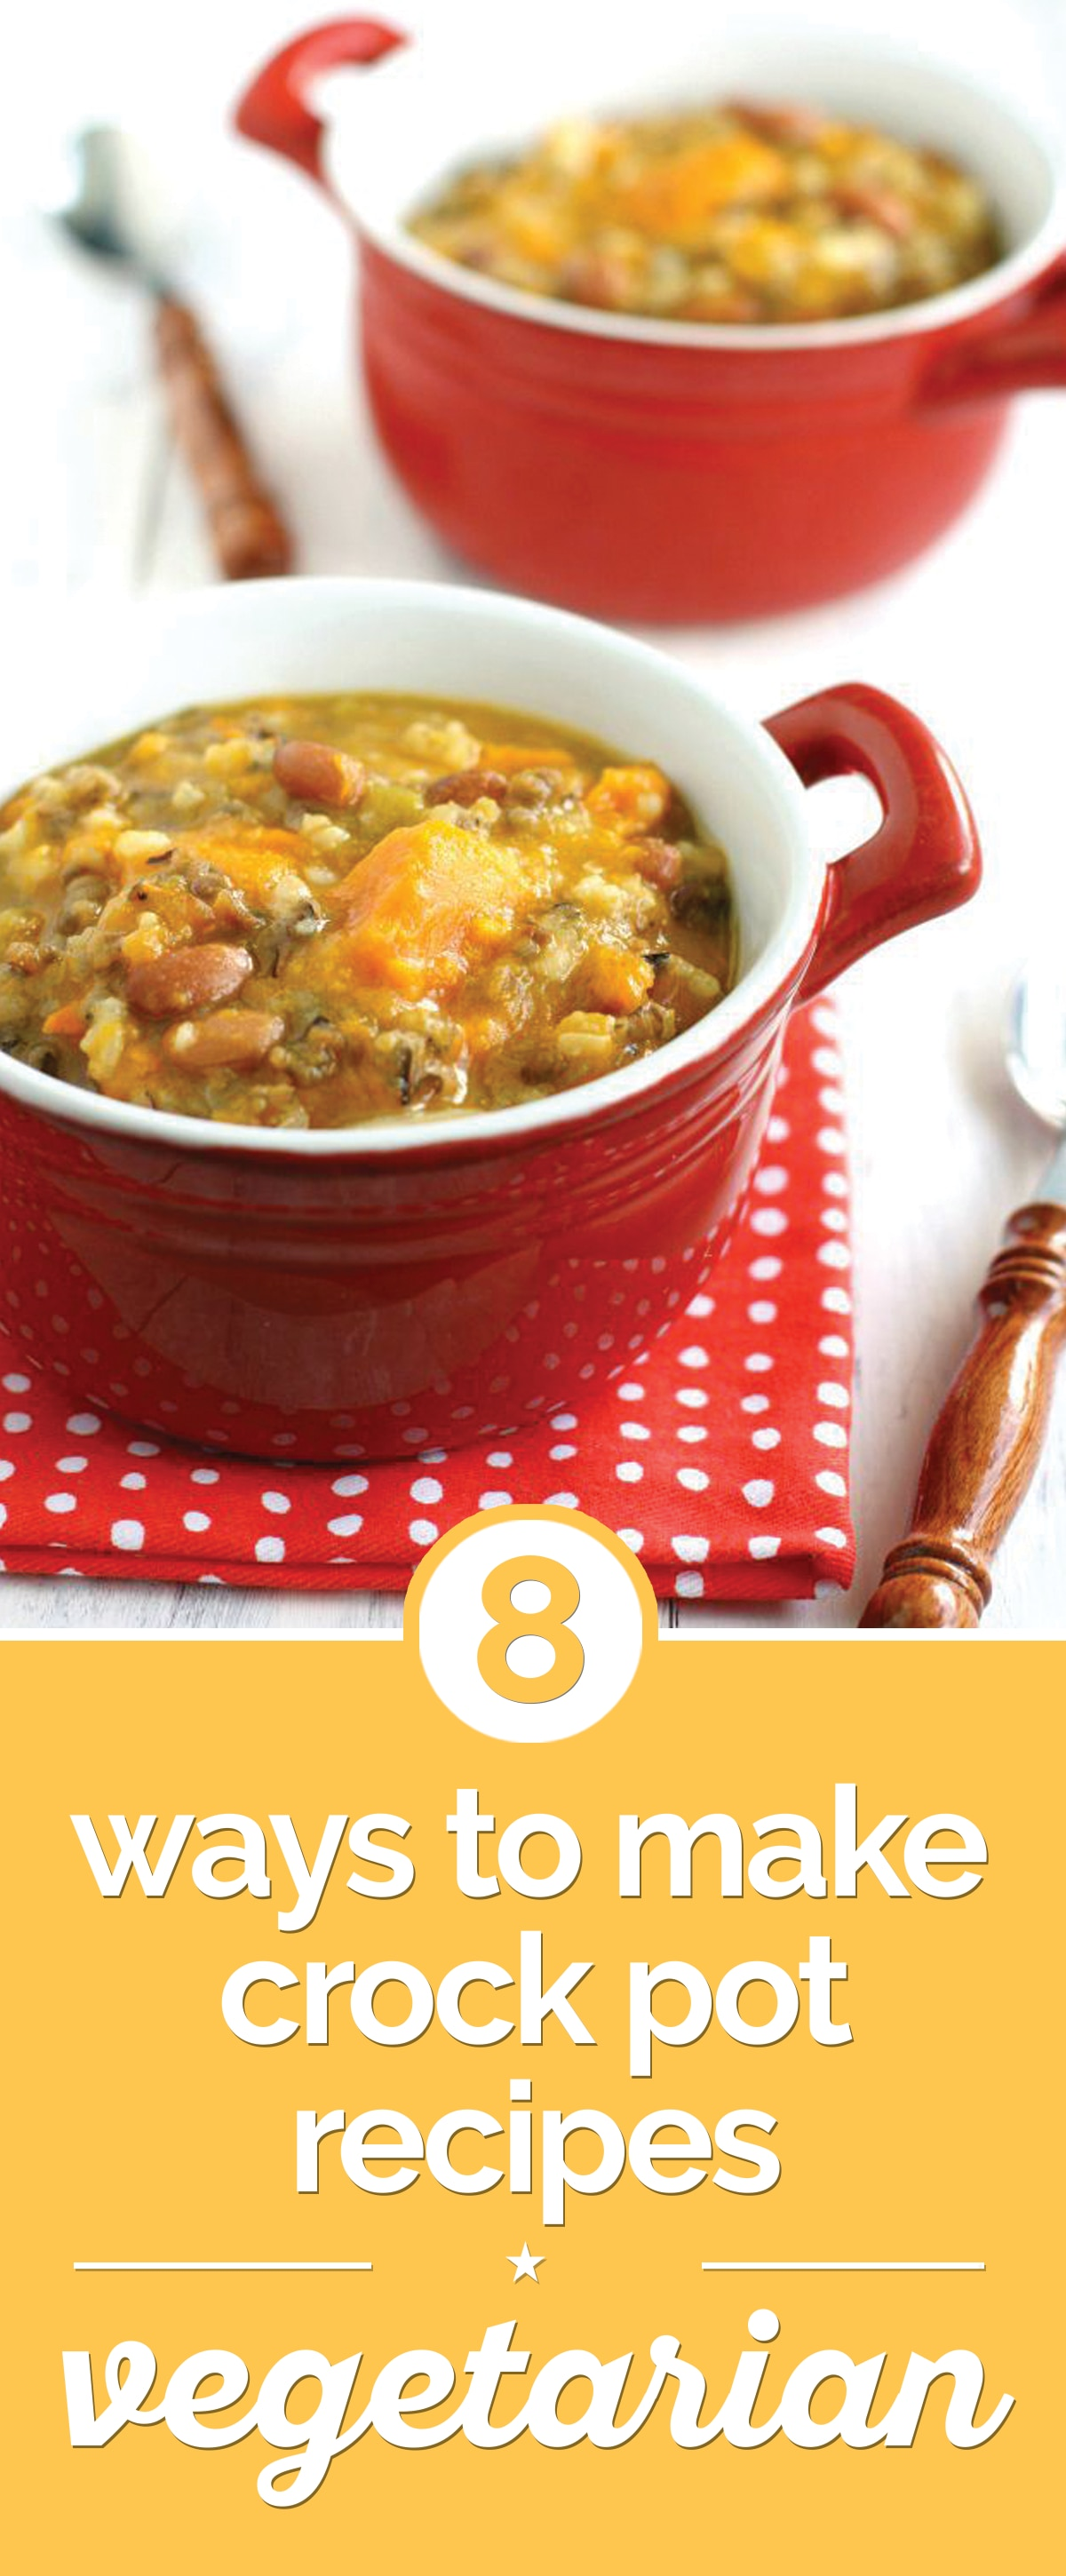 8 Ways to Make Crock Pot Recipes Vegetarian | thegoodstuff